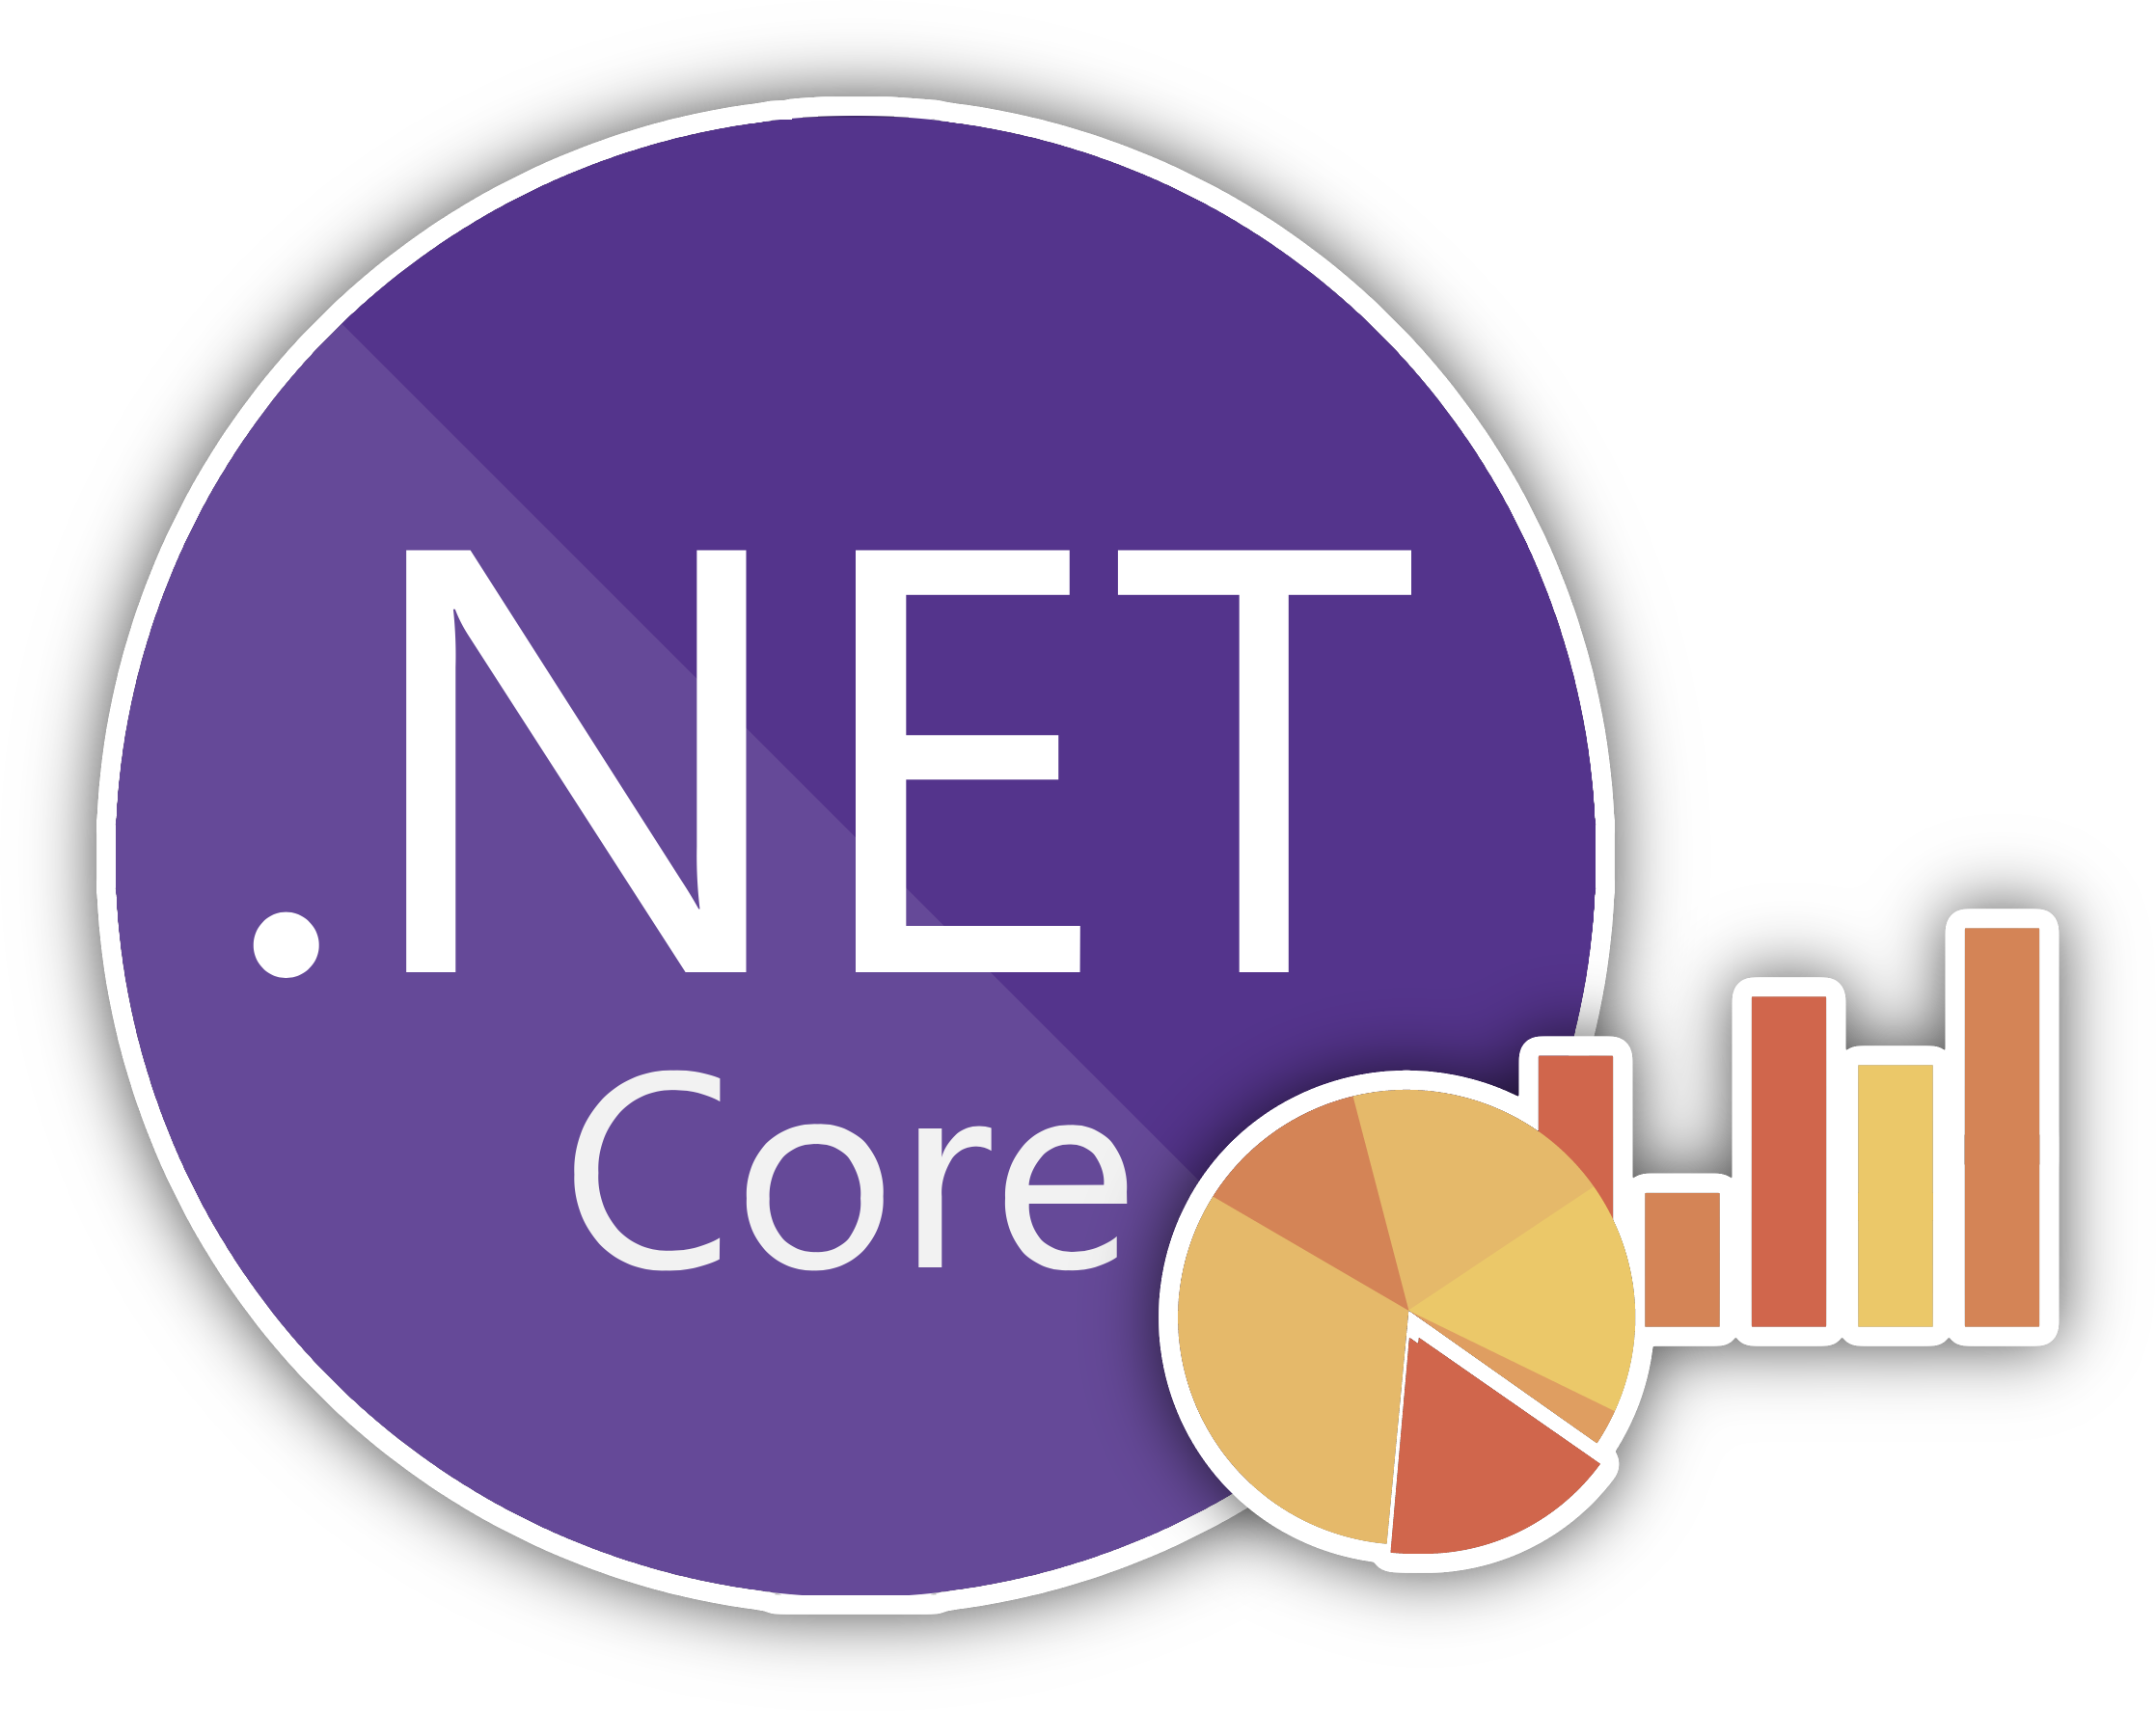 .NET Core analytics